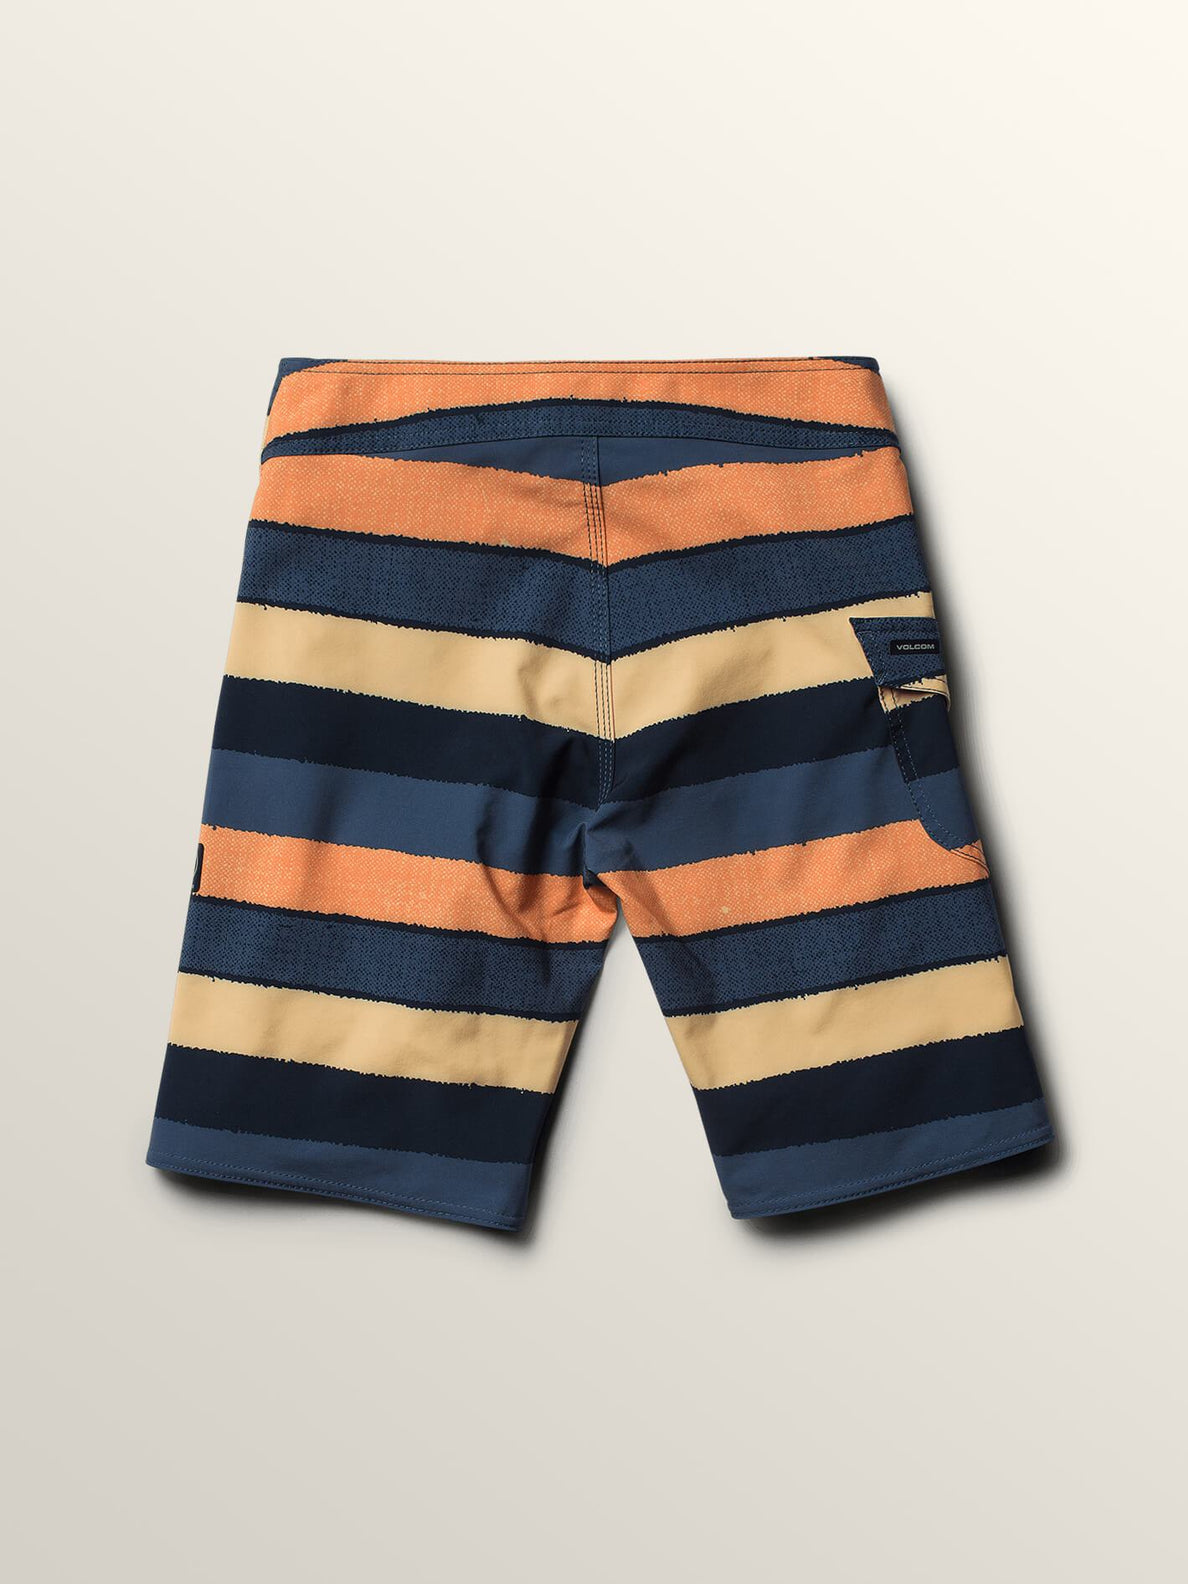 Big Boys Magnetic Liney Mod Boardshorts In Sunburst, Back View